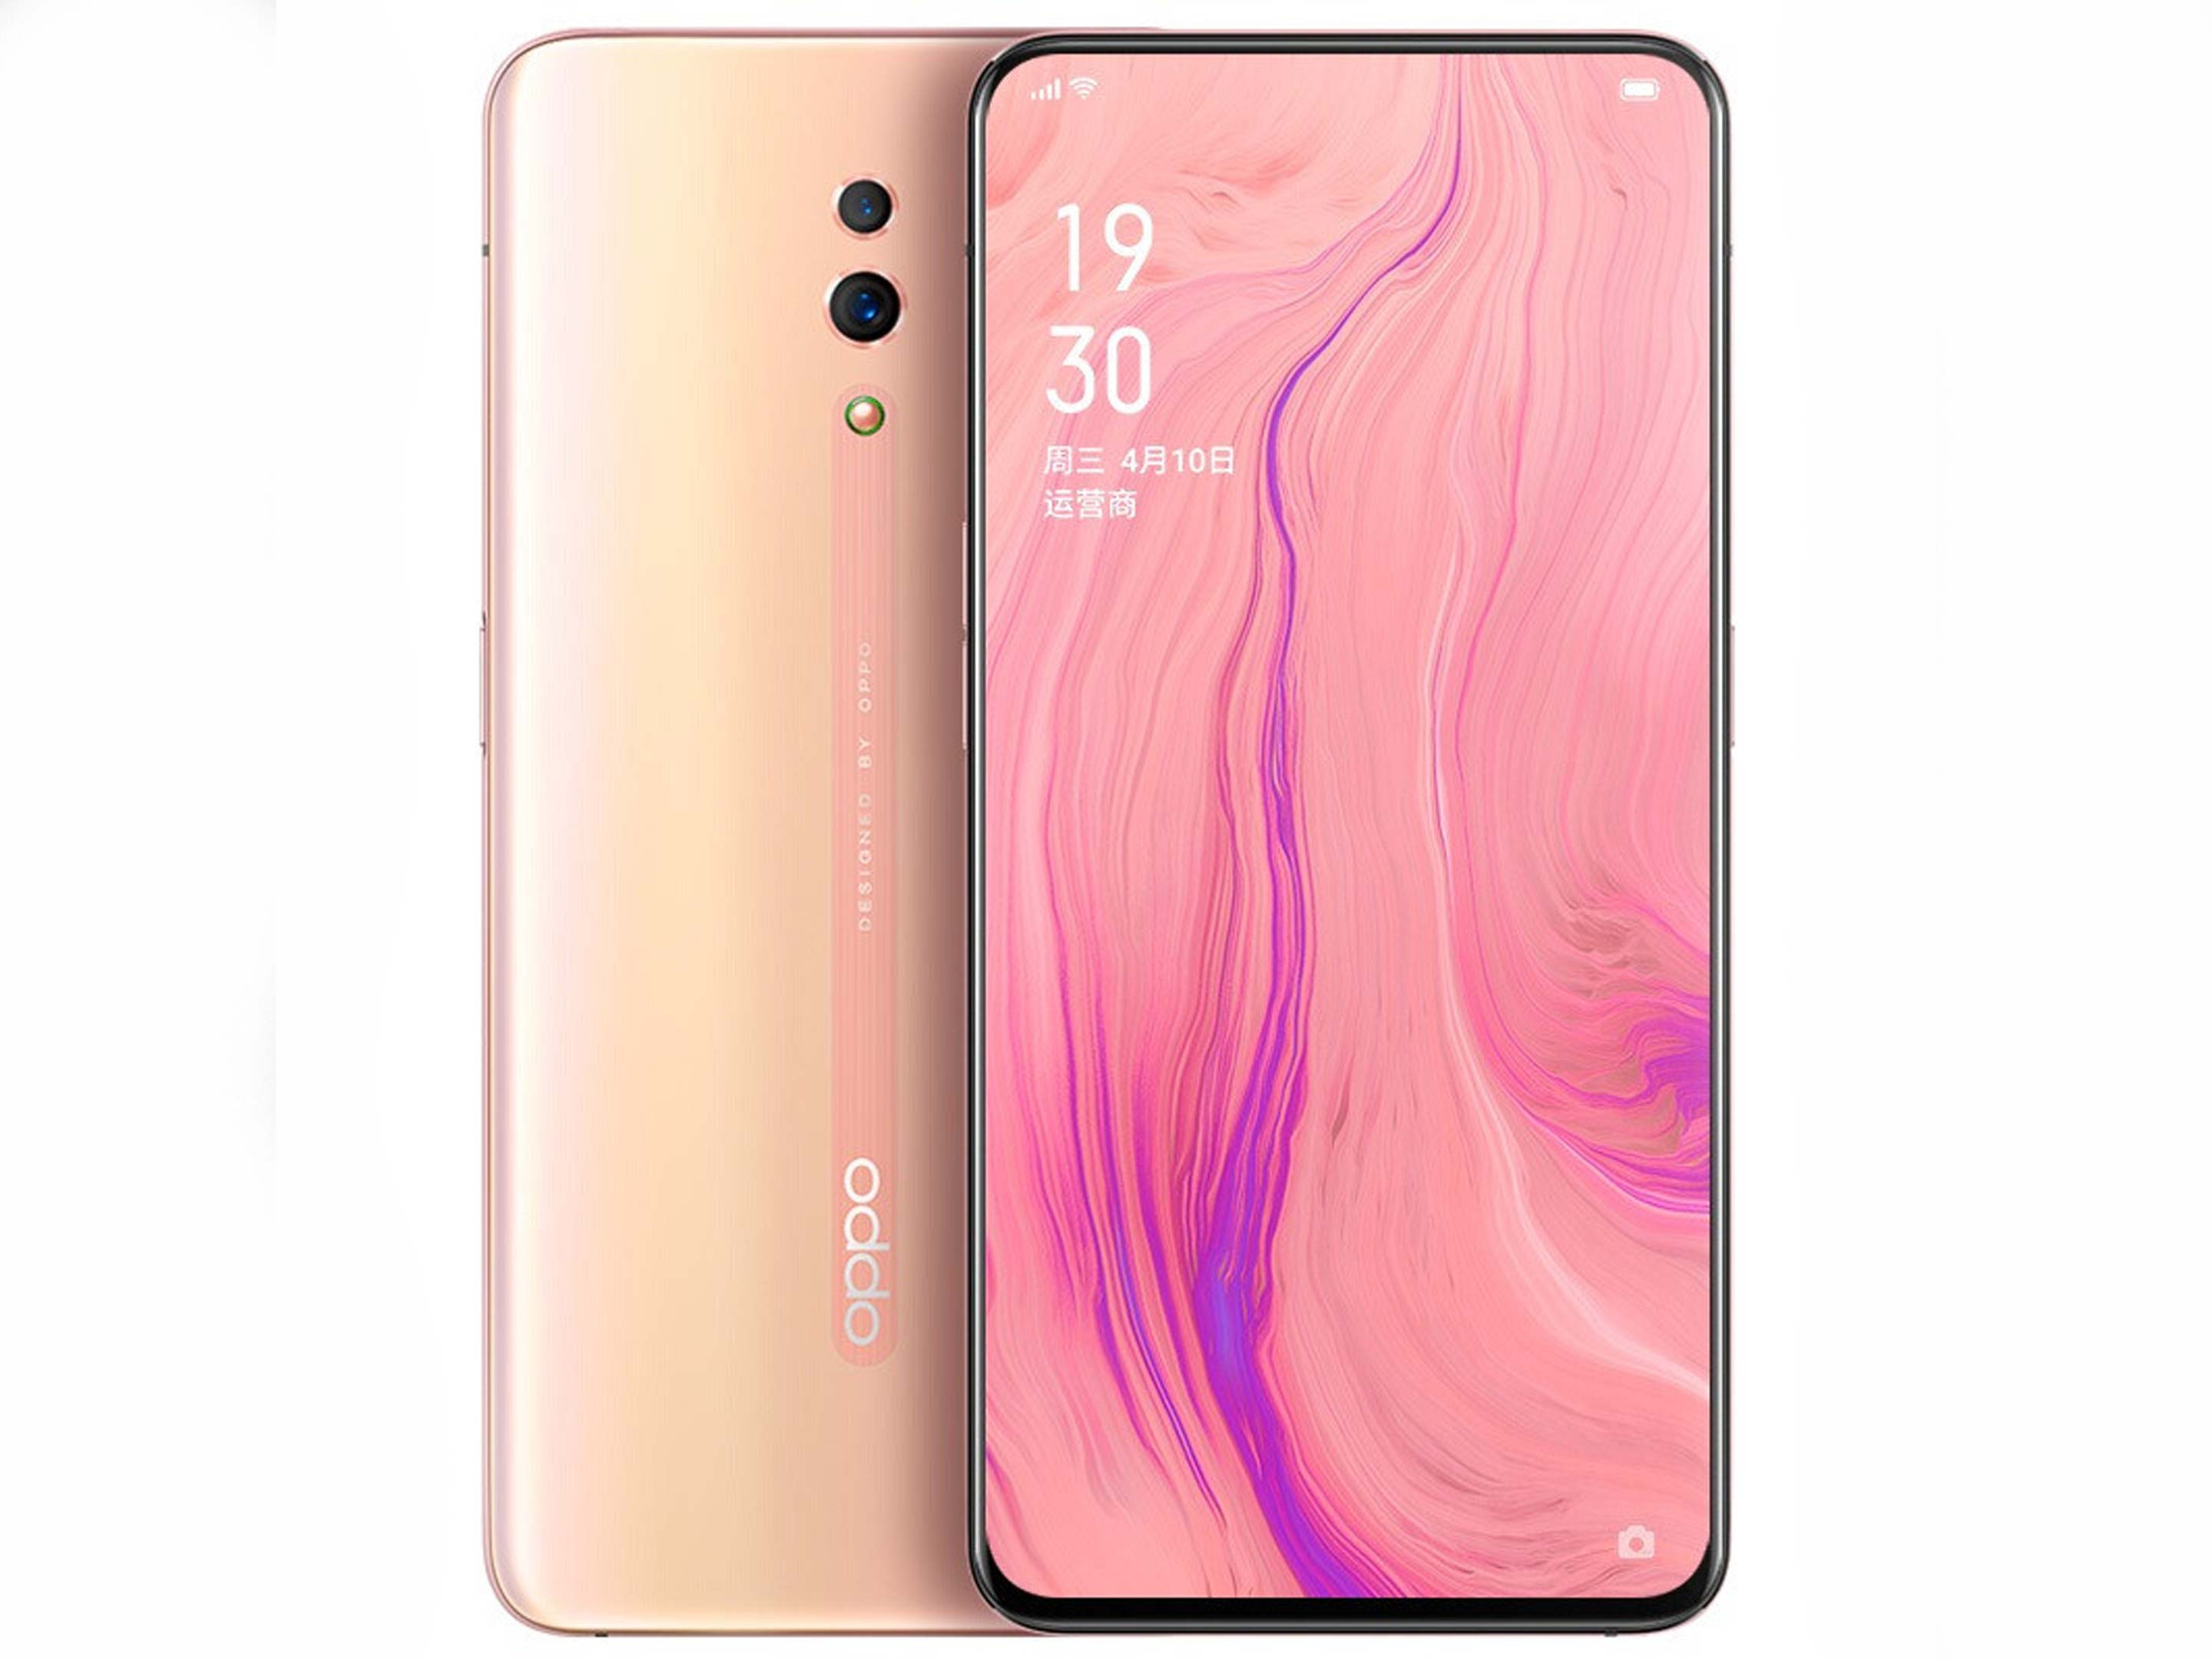 The Oppo Reno in pink